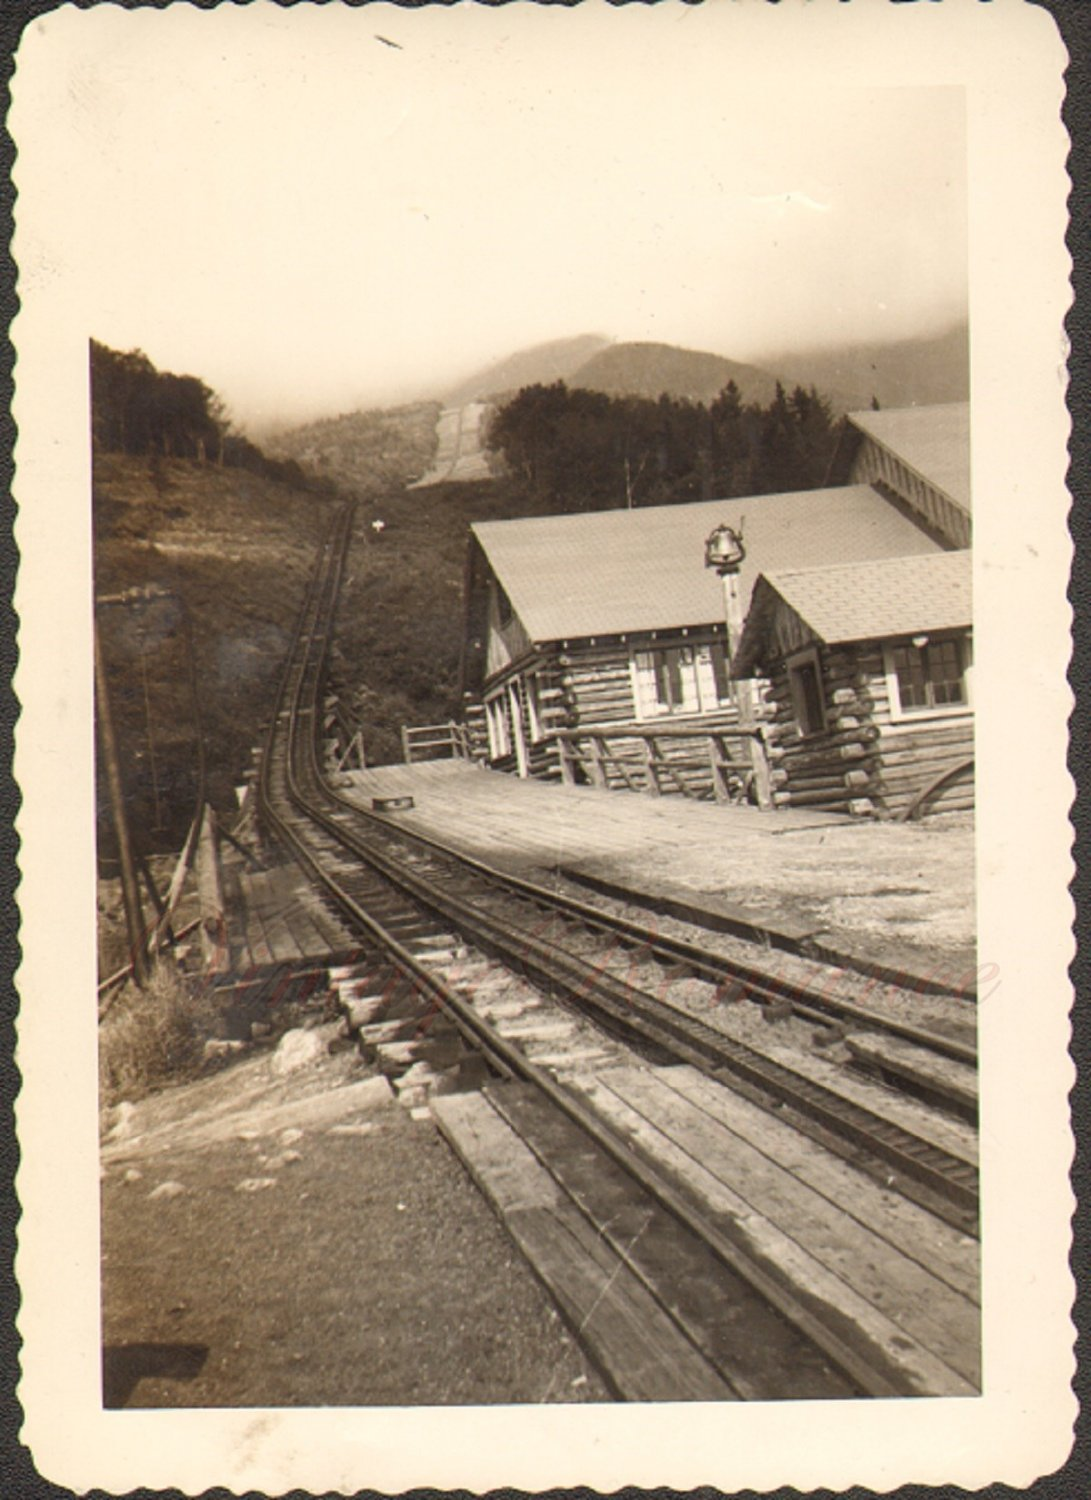 Cog Railway Office Log Cabins Dirt Road Vintage Photo 1942